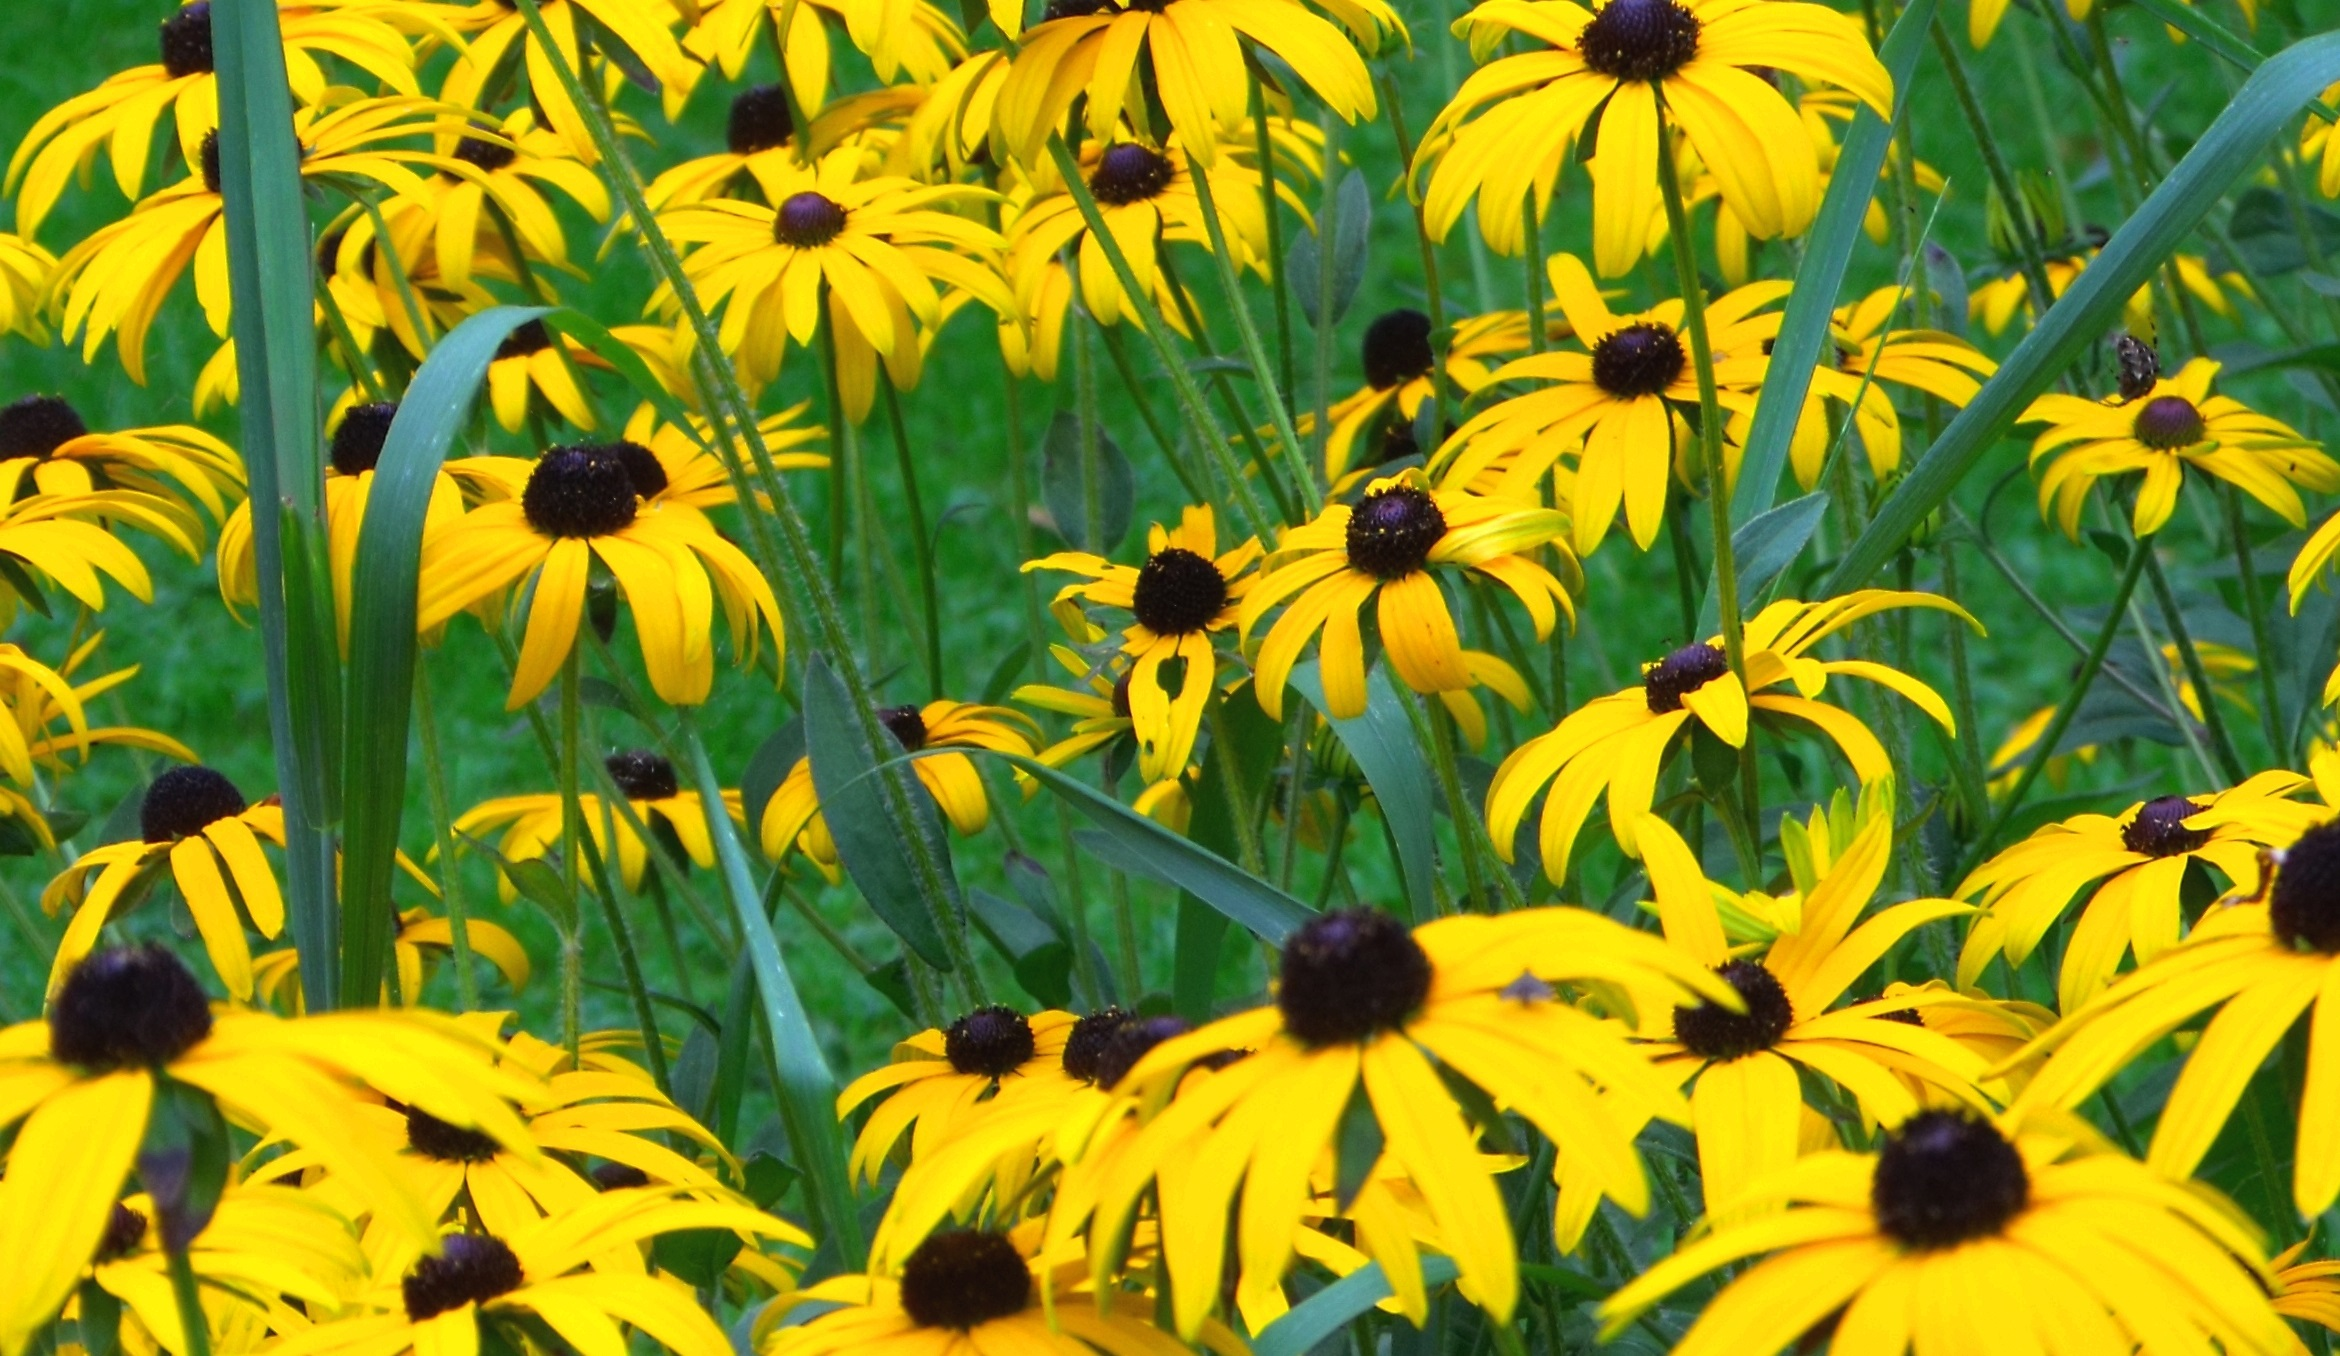 Biopgh Blog Wild About Wildflowers Phipps Conservatory And